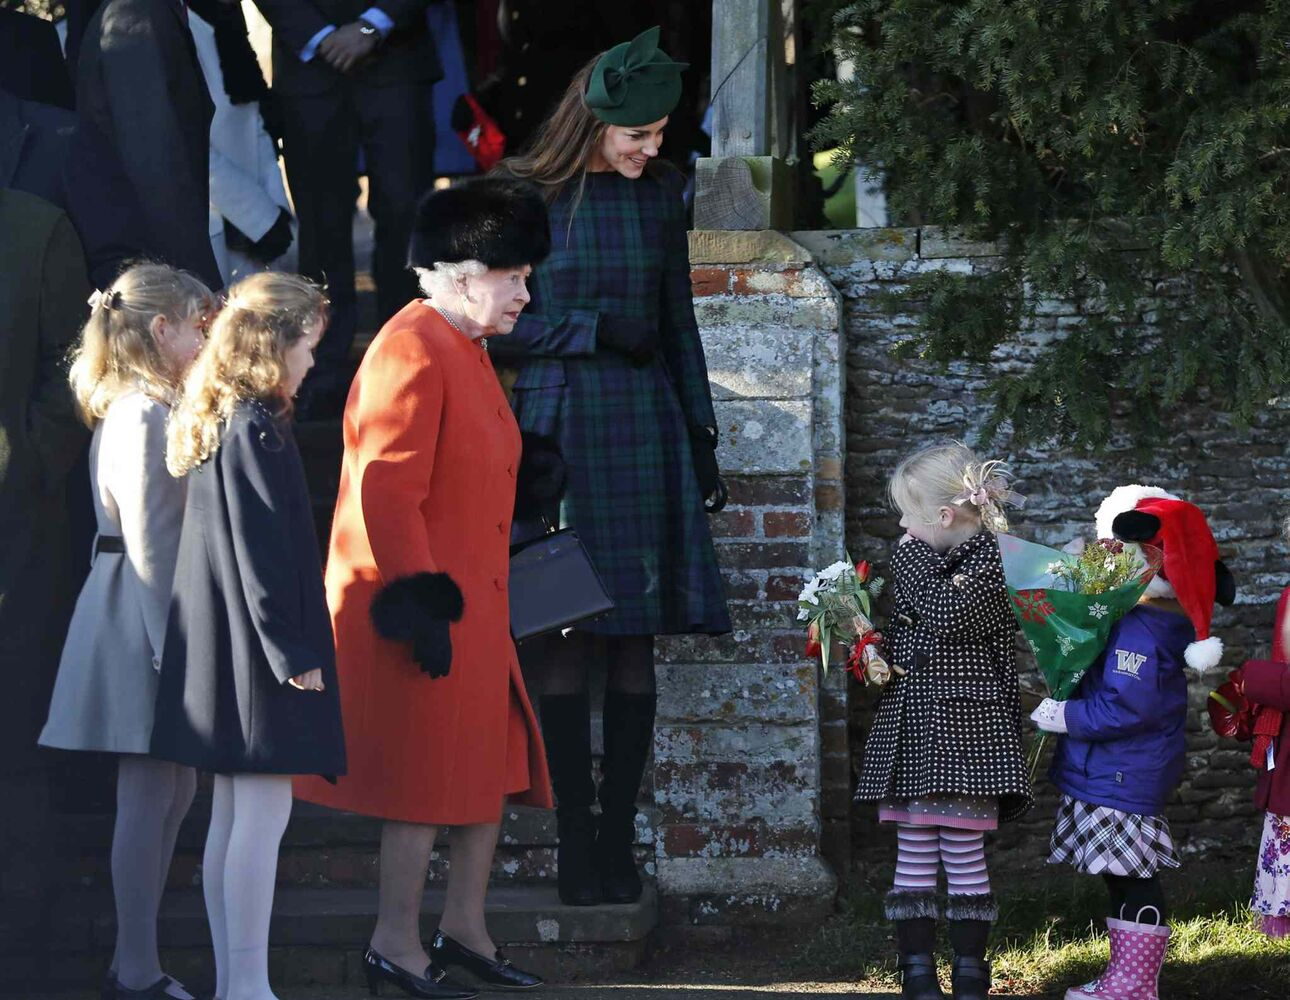 Britain's Queen Elizabeth II receives flowers from children as the Duchess of Cambridge looks on after members of the royal family attended a Christmas Day Service at St. Mary's church on the grounds of Sandringham Estate, the Queen's royal estate in Norfolk, England, Wednesday. (The Associated Press)